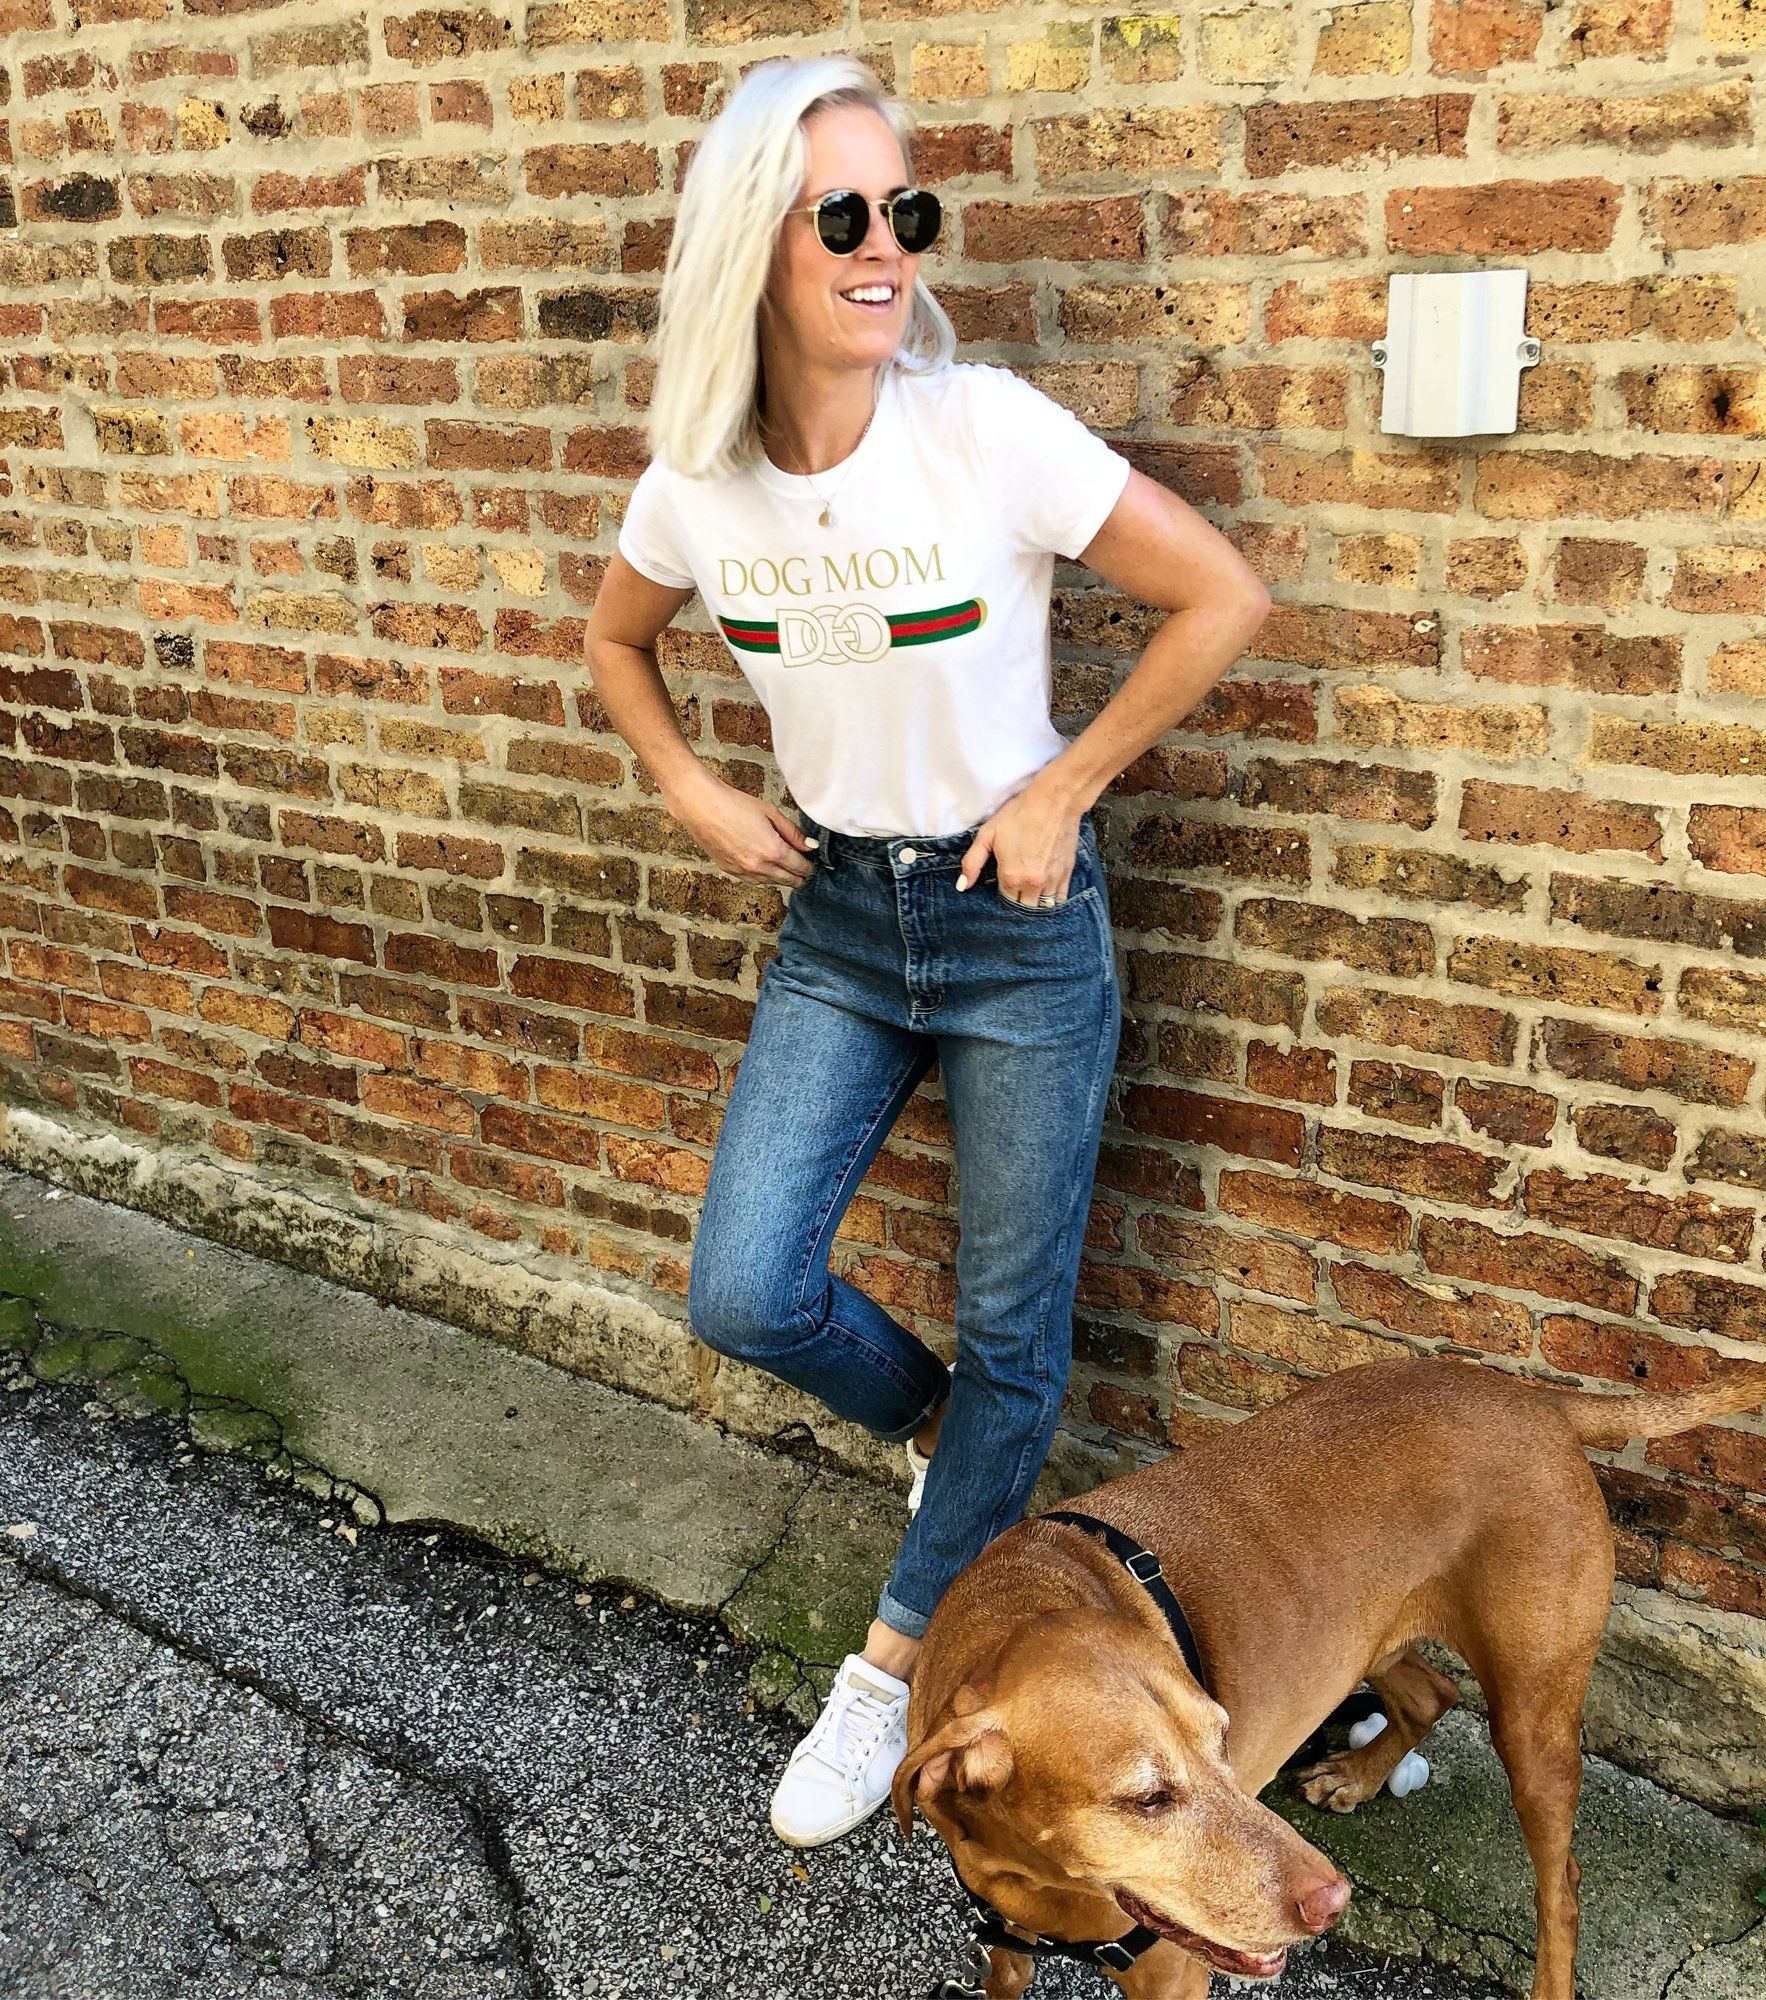 d0a780c9b0947 Designer Dog Mom tee – Taylor Wolfe  style  dogs  ootd